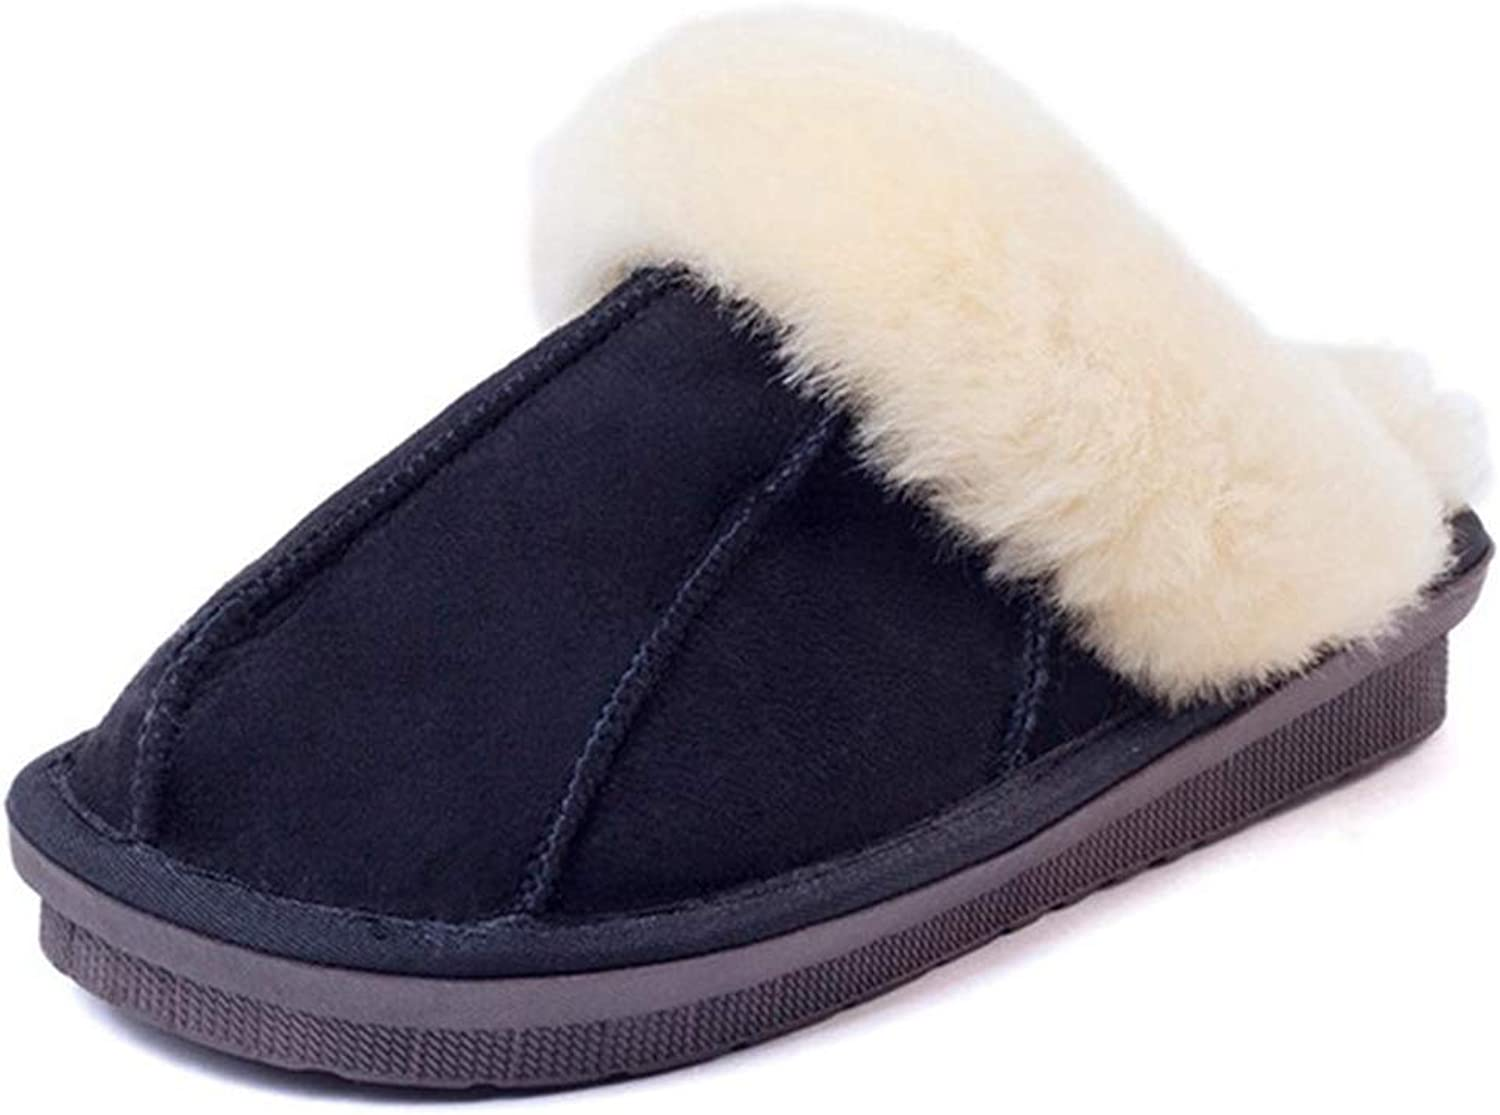 Nafanio Winter Warm Indoor shoes Thick Wool Slippers Women Men Couple Furry Sheepskin Genuine Leather Slippers